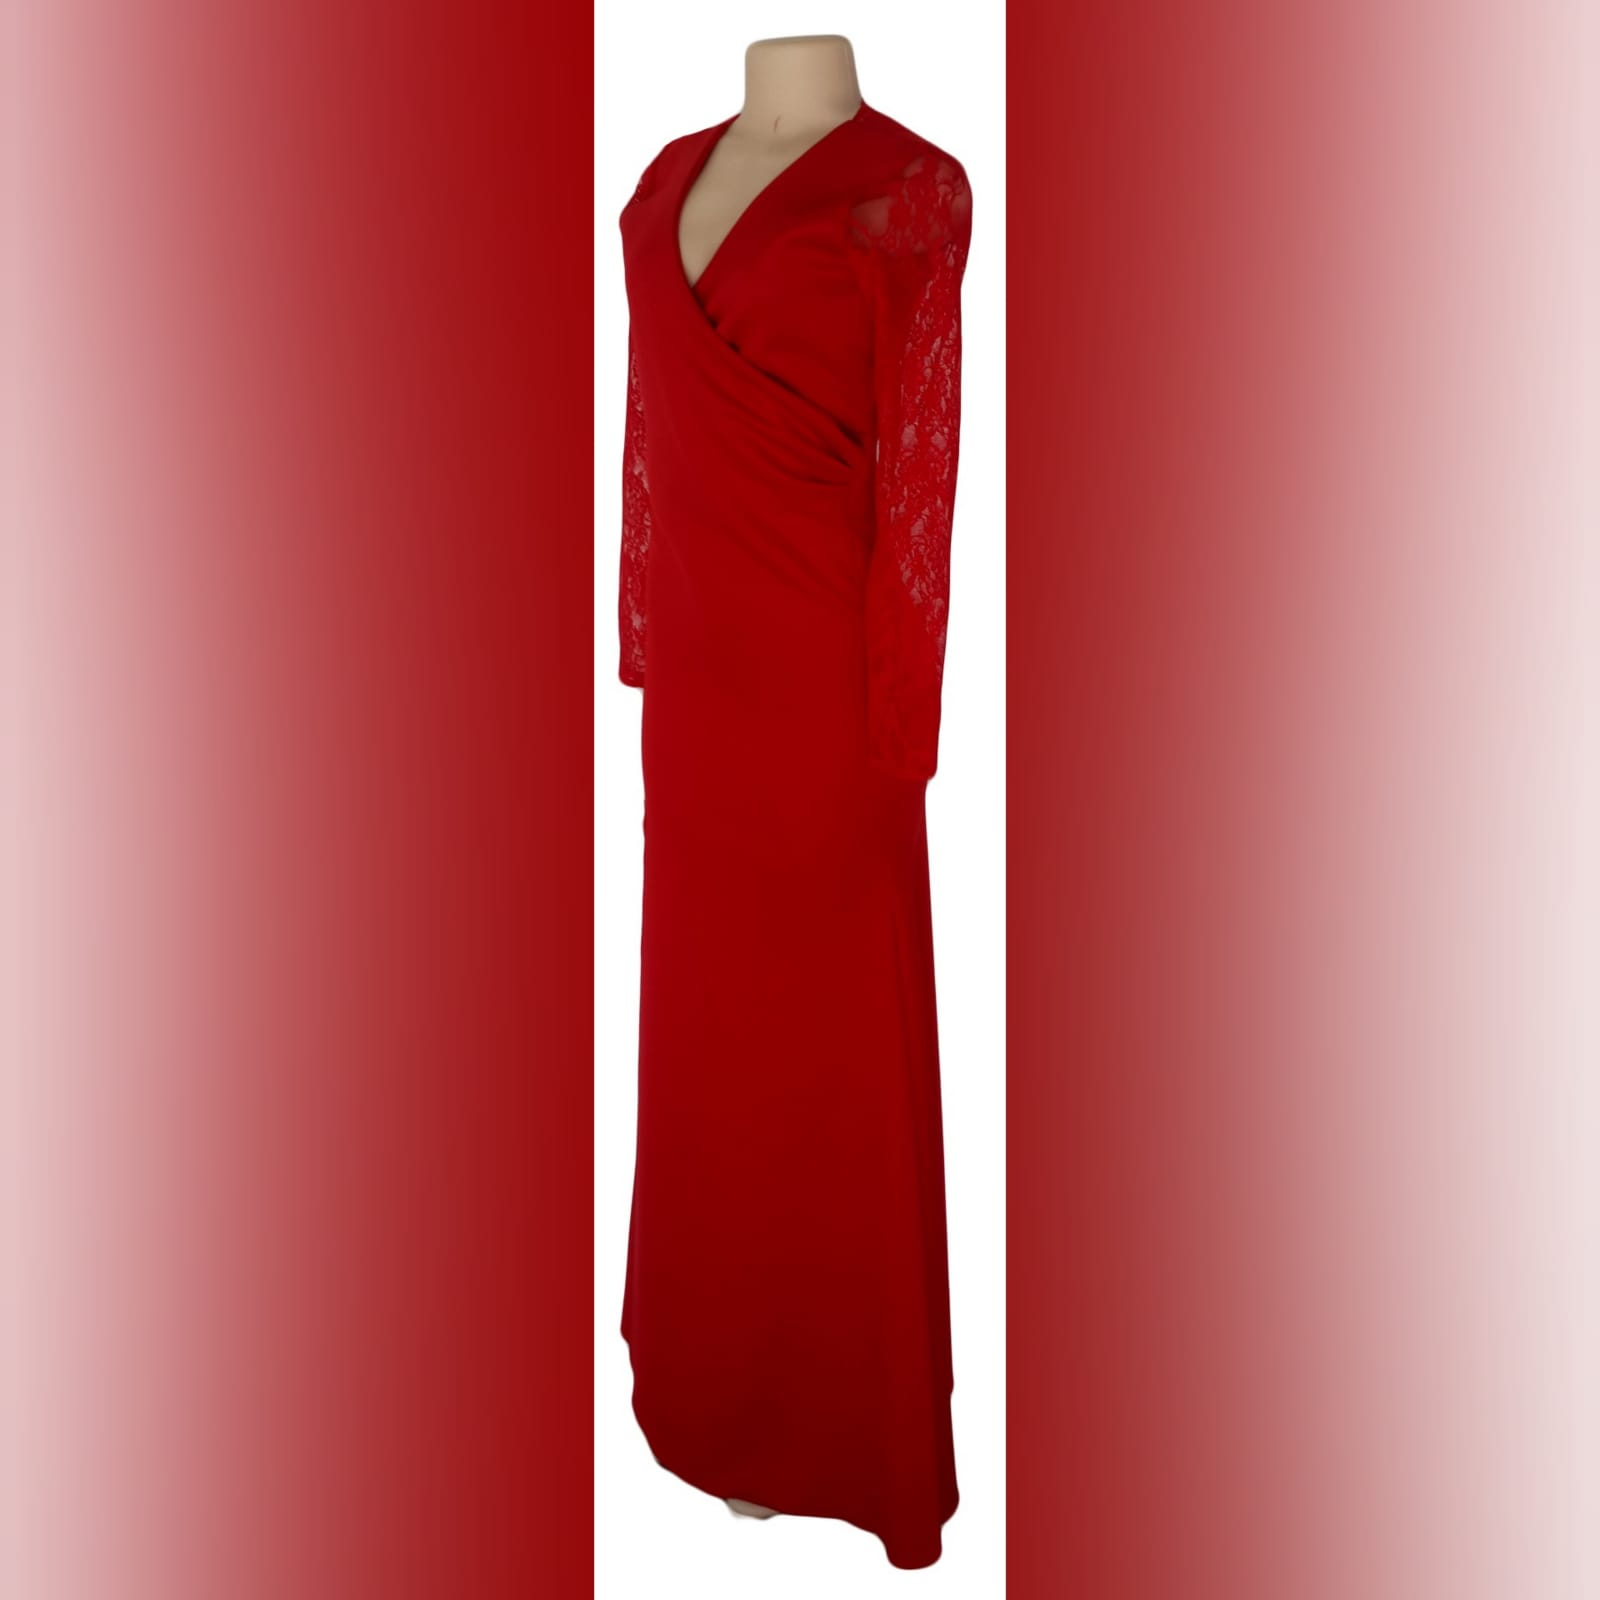 Long red cross busted evening party dress 3 long red cross busted evening party dress with long lace sleeves. With back neckline in lace. With a slit